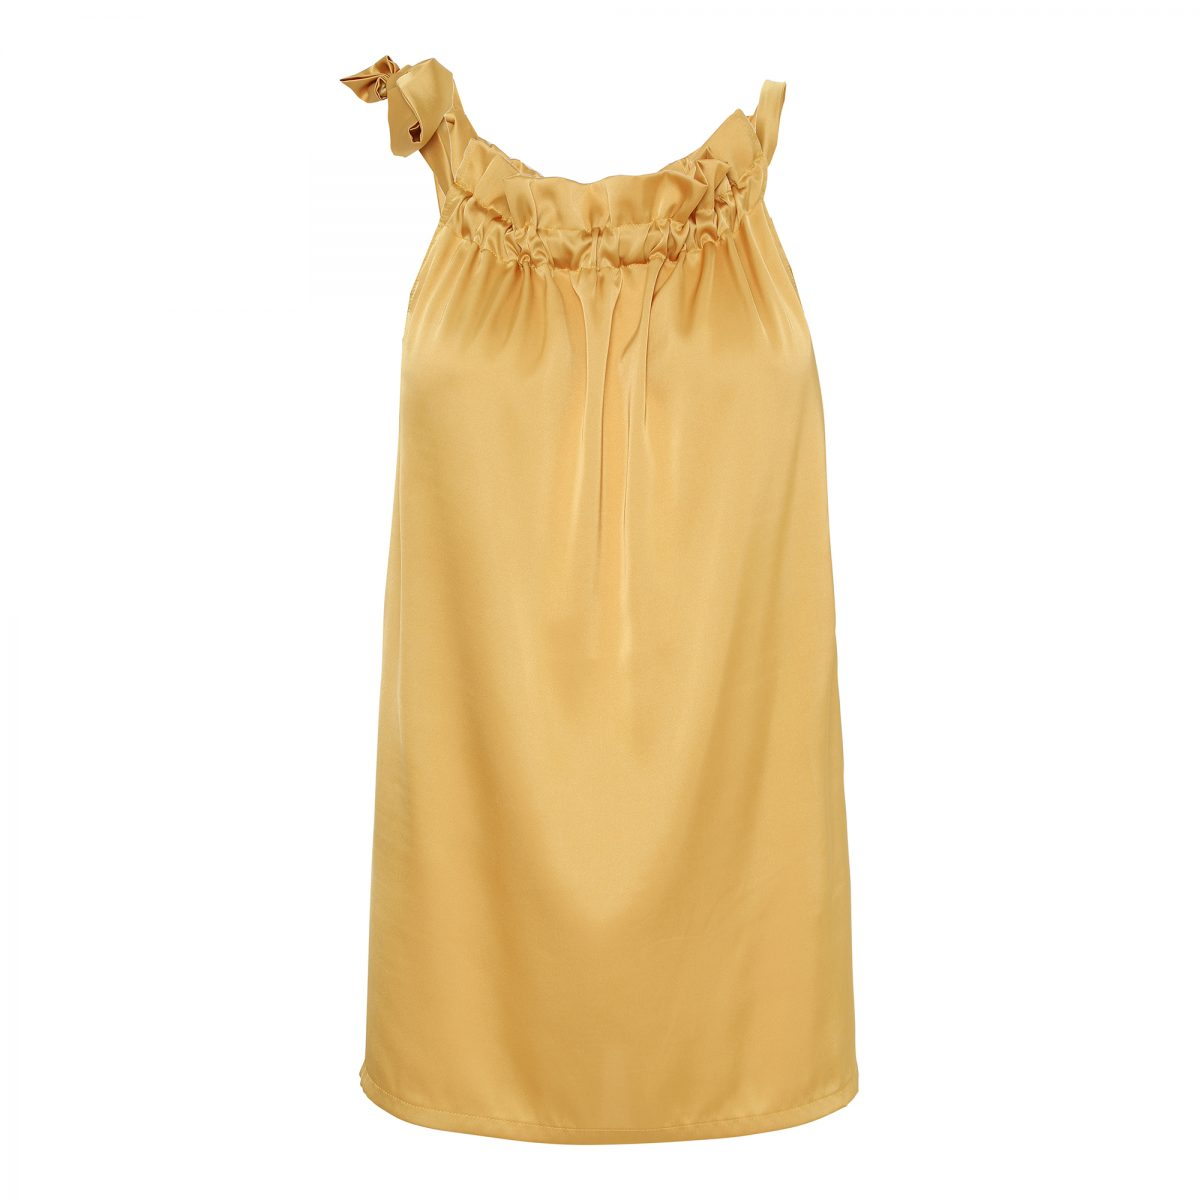 Golden-Yellow-Ruffle-Tie-Top- image by me karmamia